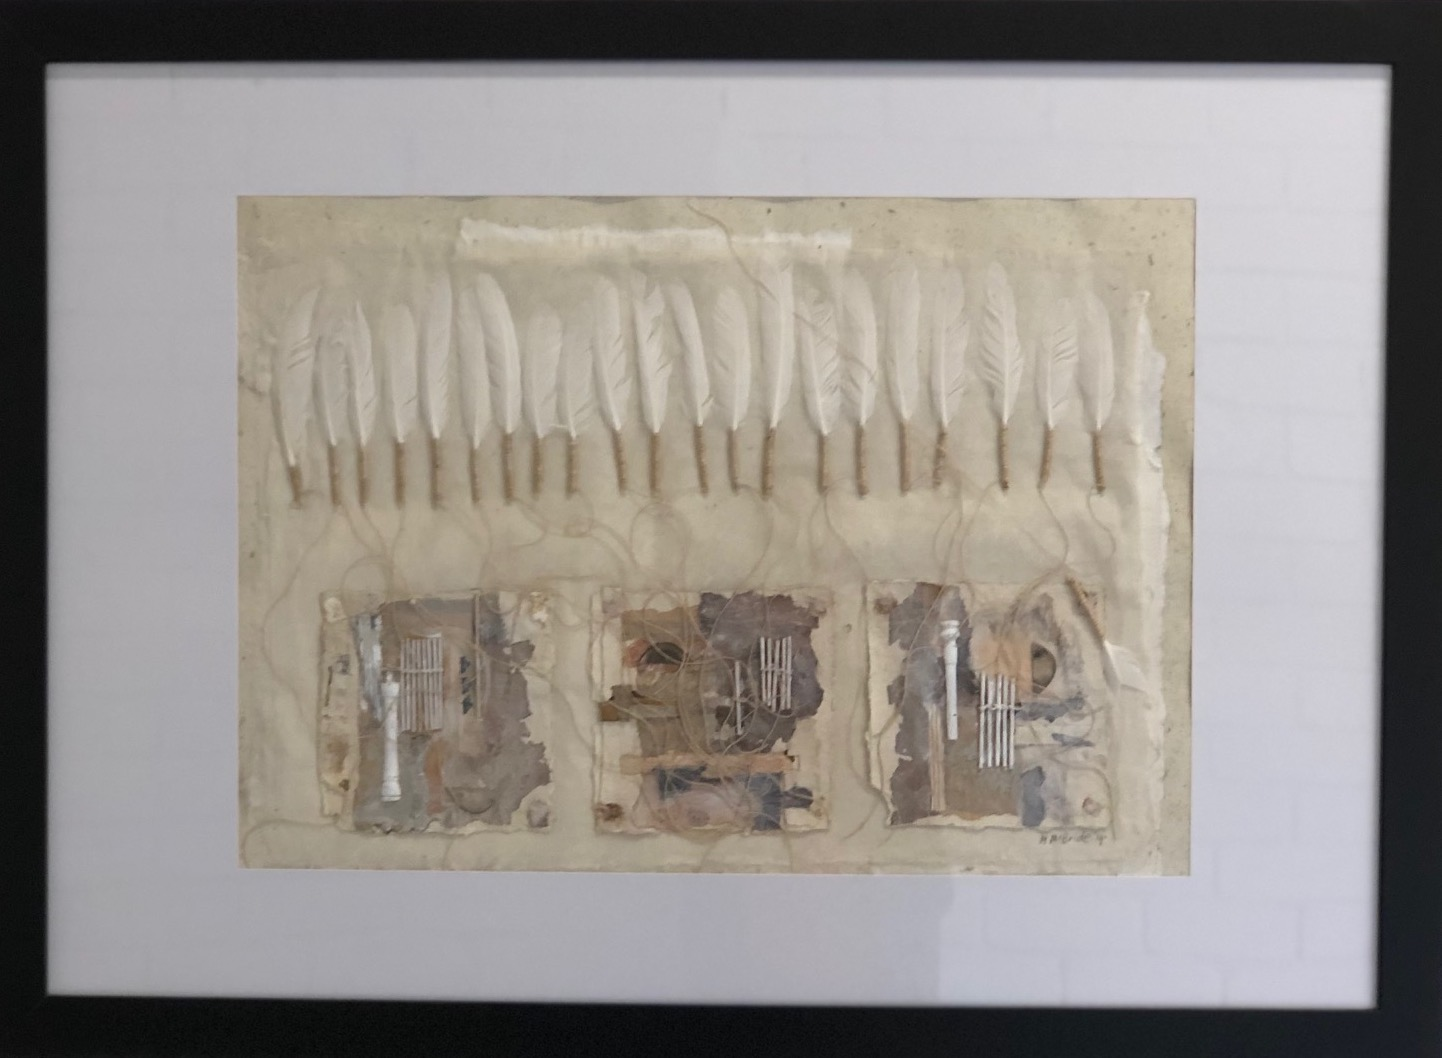 Margaret McBride Flying without wings 2019 collage and mixed media on mulberry paper 60 x 85cm frame size $300.00